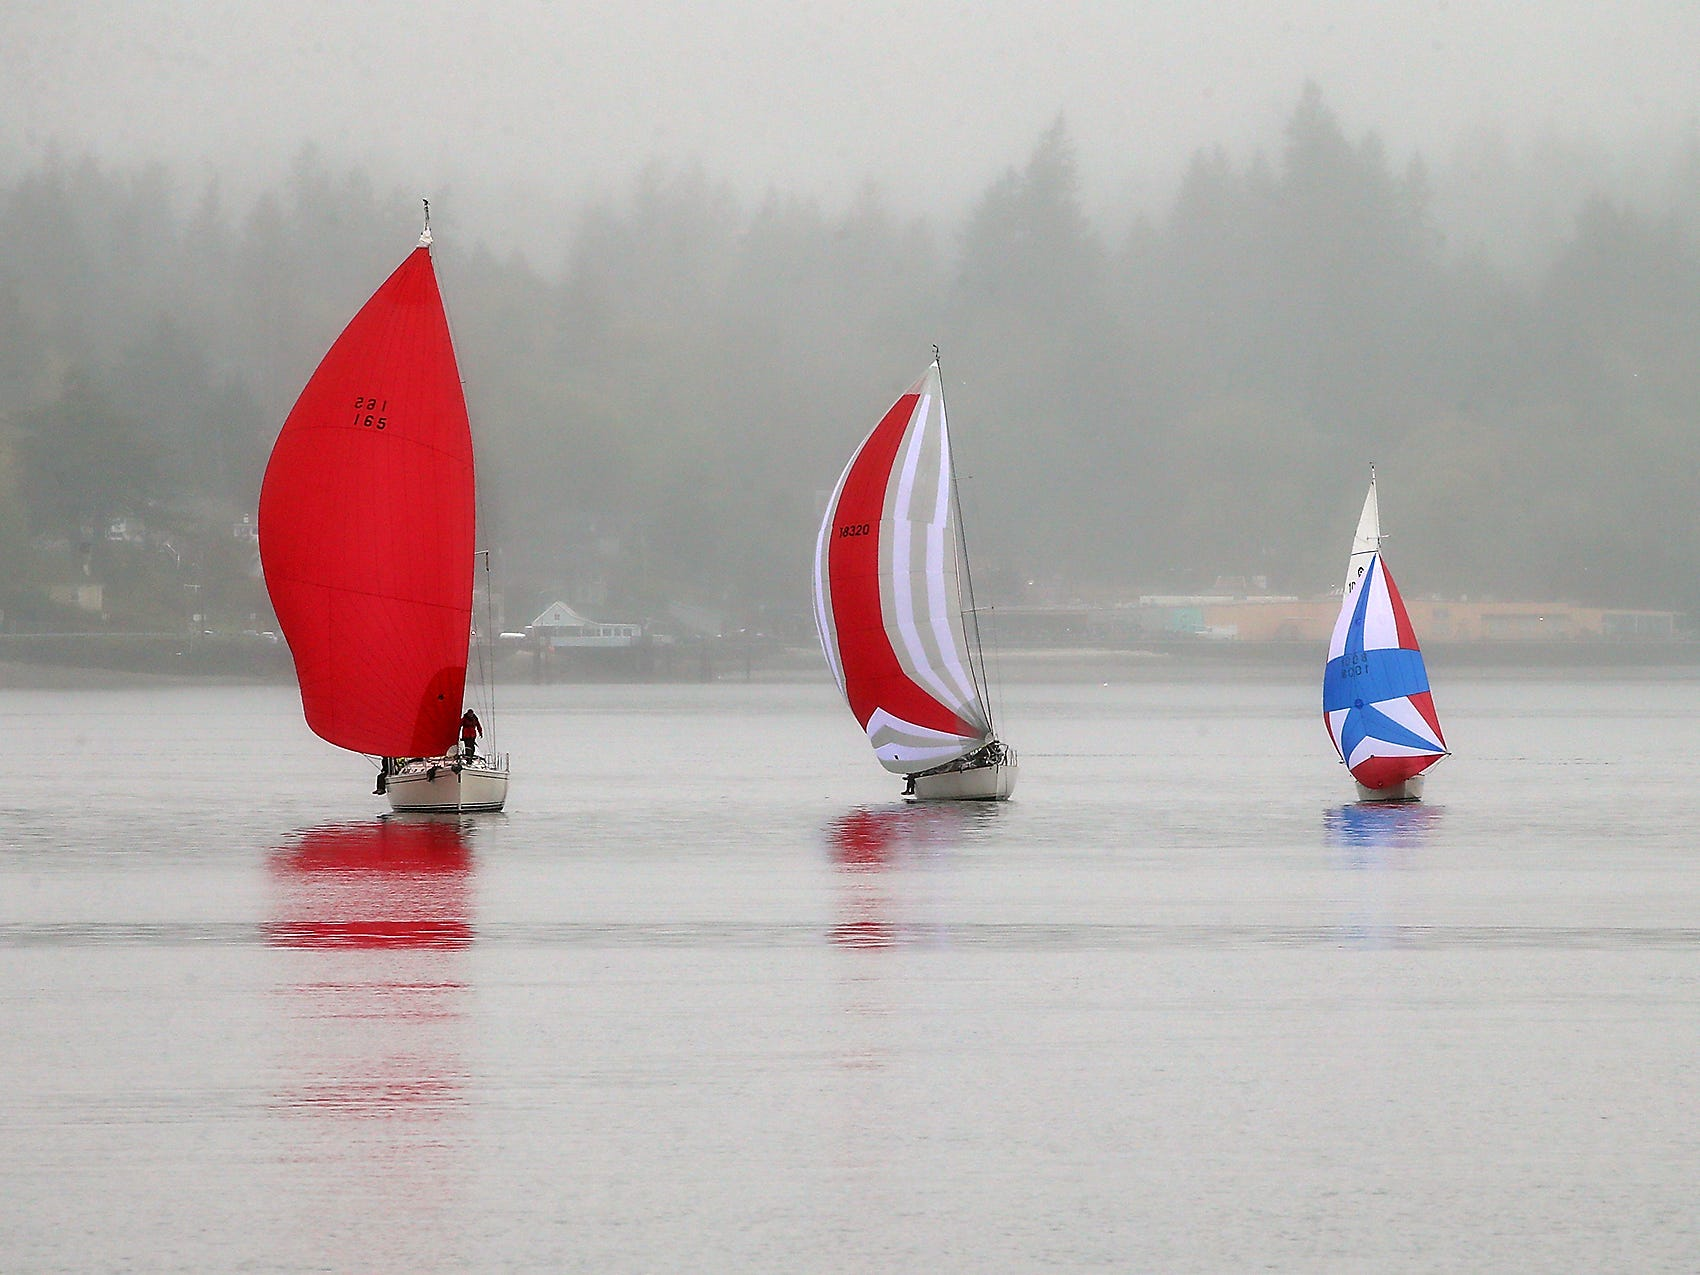 A trio of colorful sailboats catch the wind as they sail off the shore of Bremerton, Washington on a rainy Saturday, April 14, 2018.